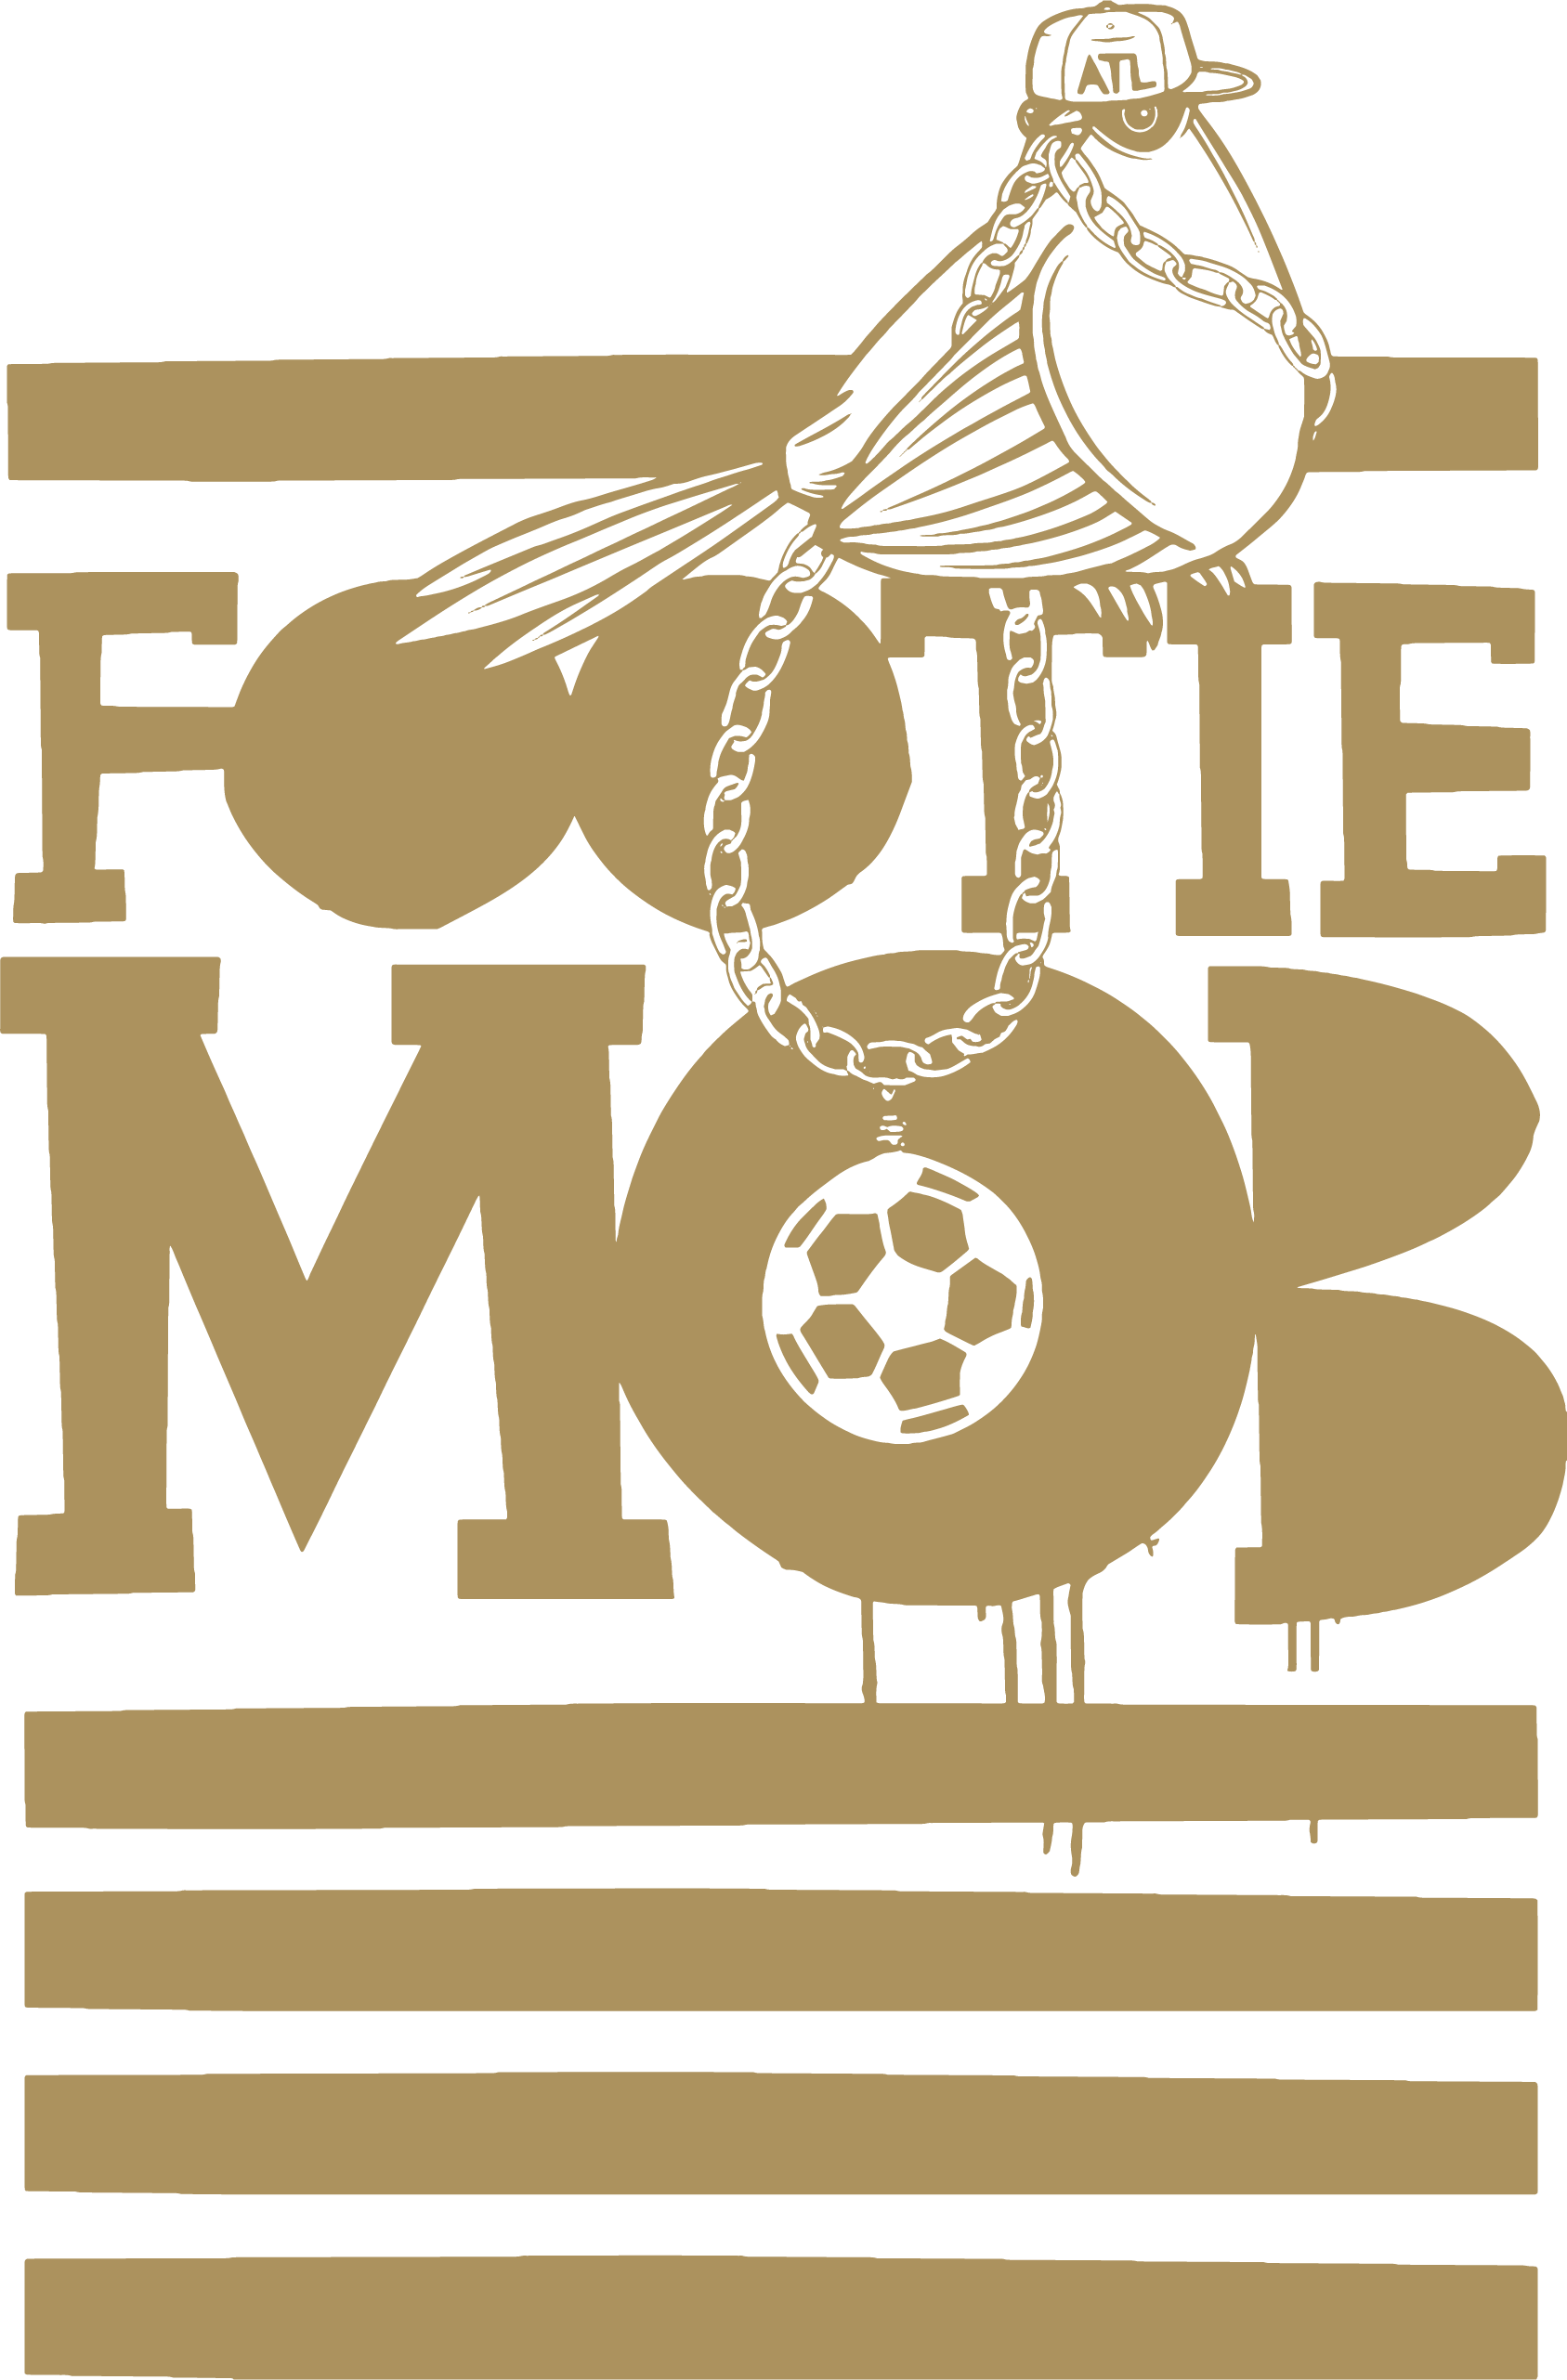 Dirty Bird - AND THE FOOTIE MOB SOCCER CLUB